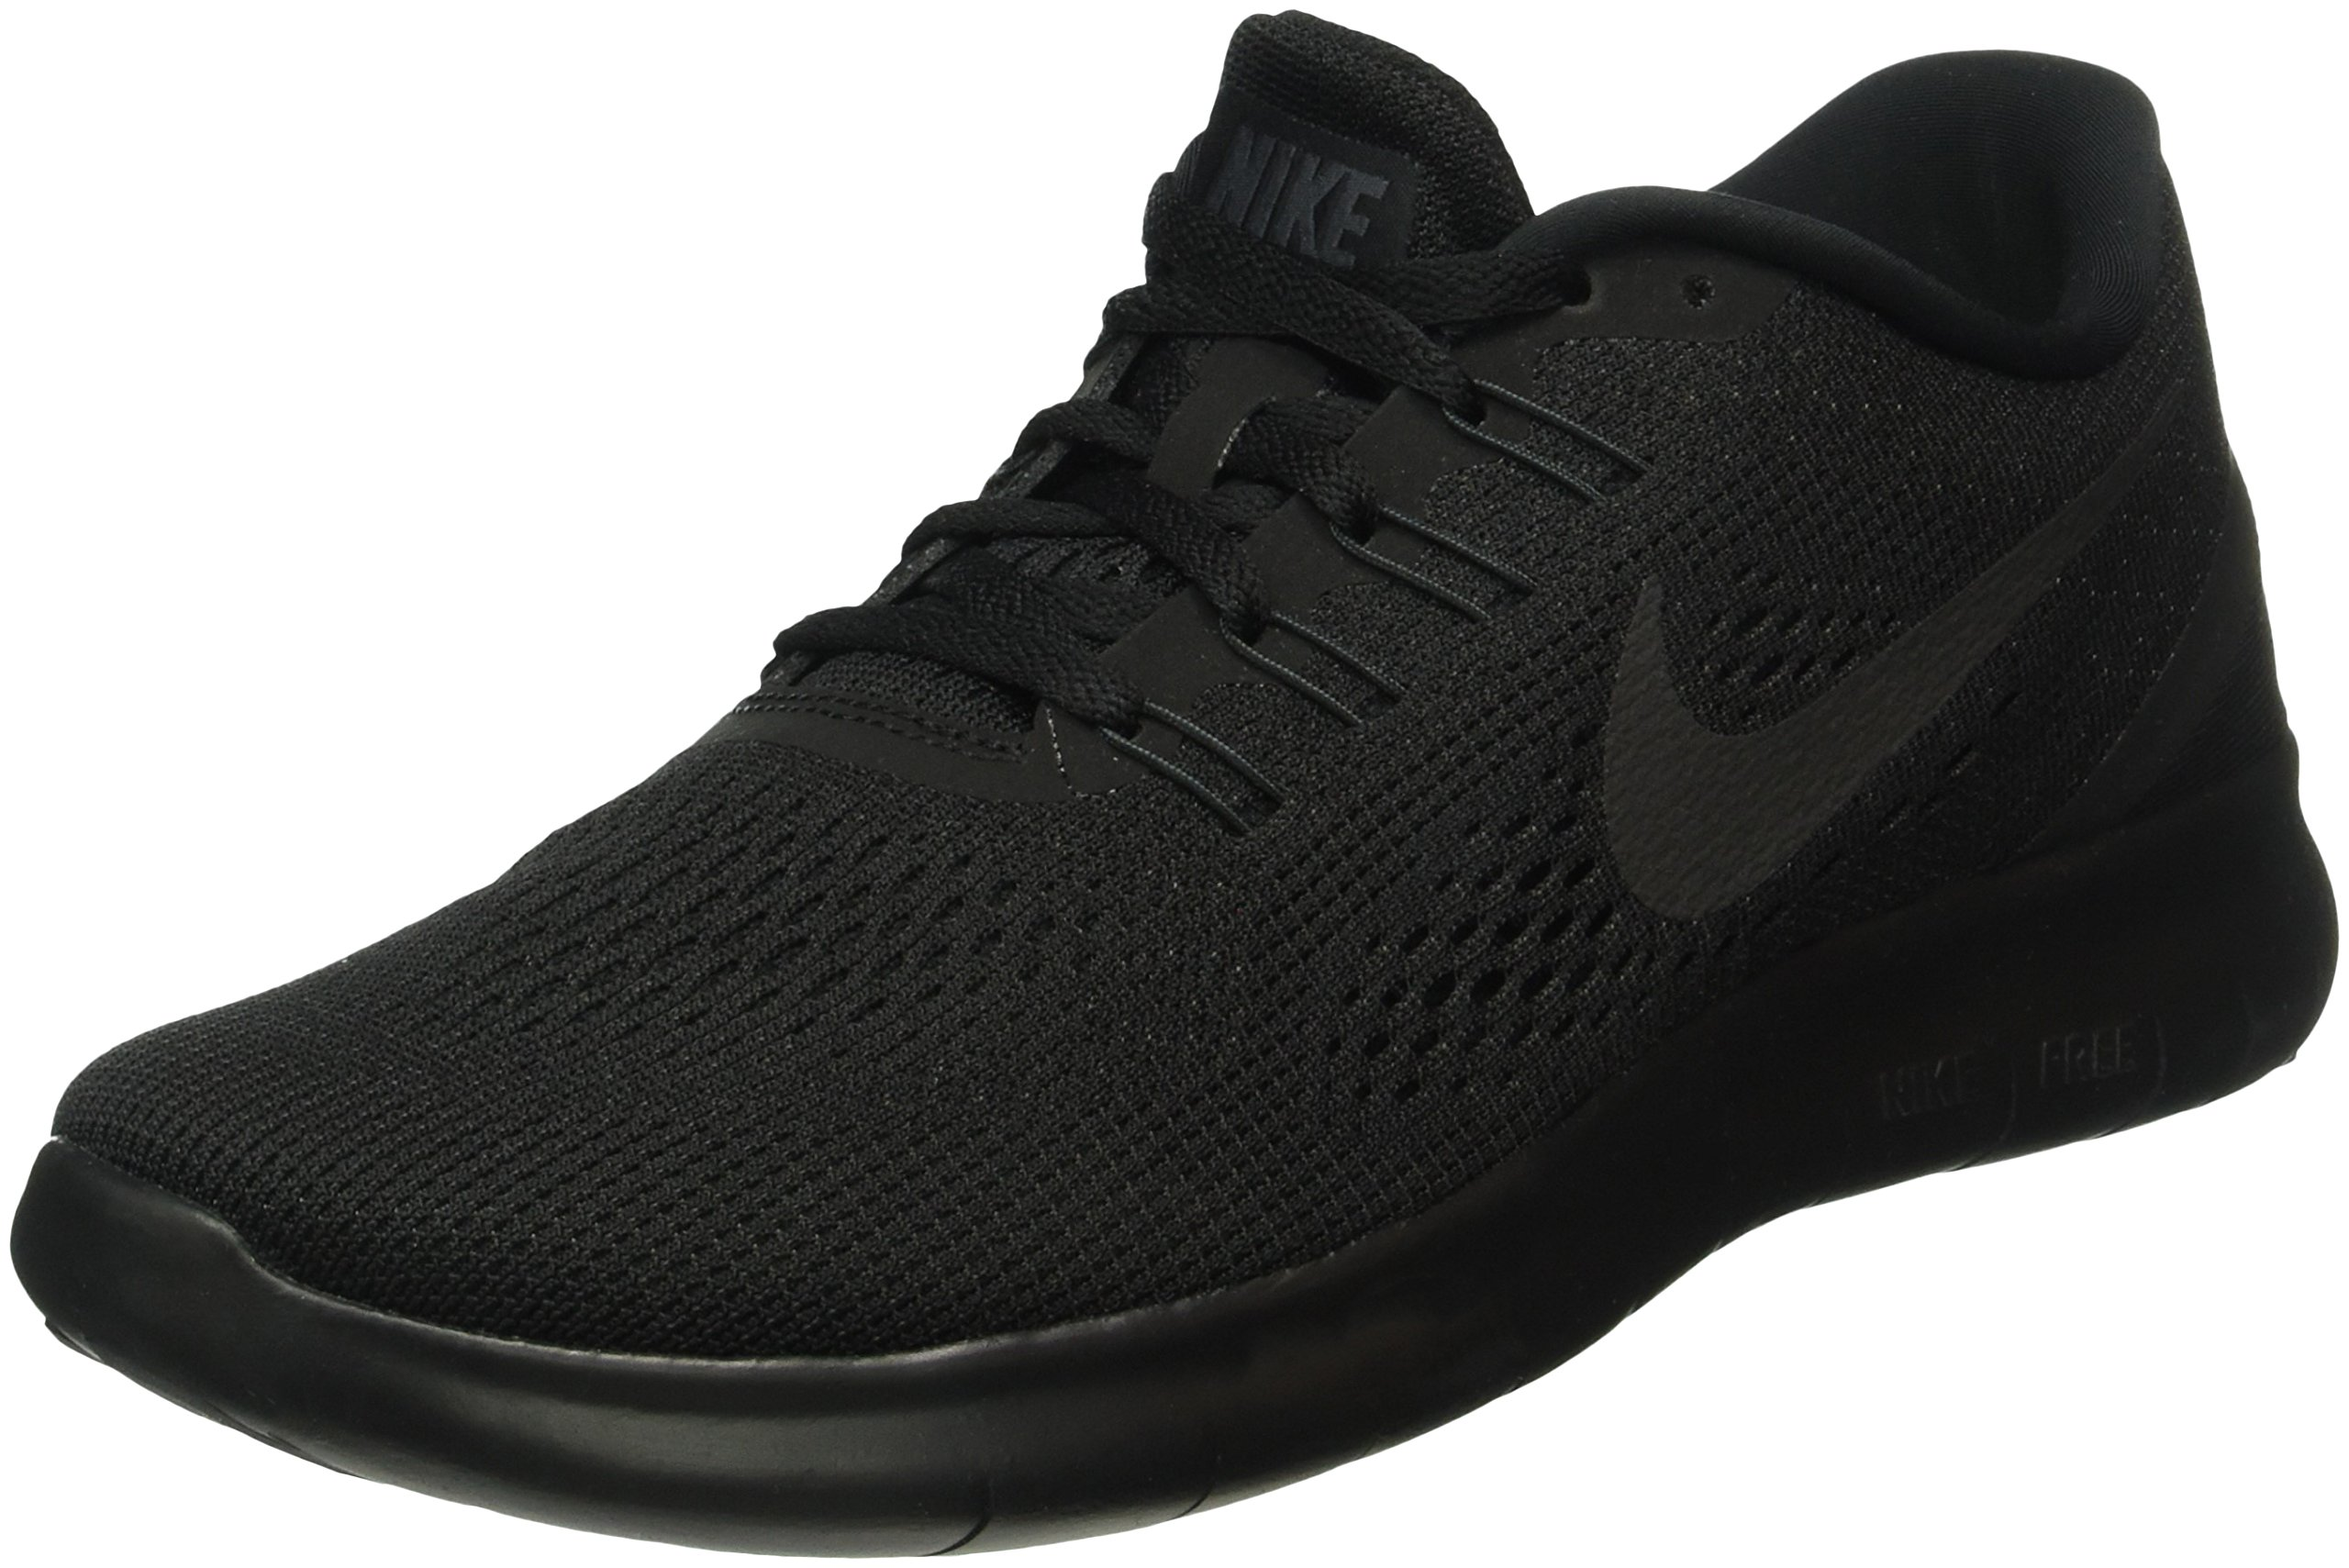 7a762767 Nike Men's Free Rn Black/Black/Anthracite Running Shoe 10.5 Men US